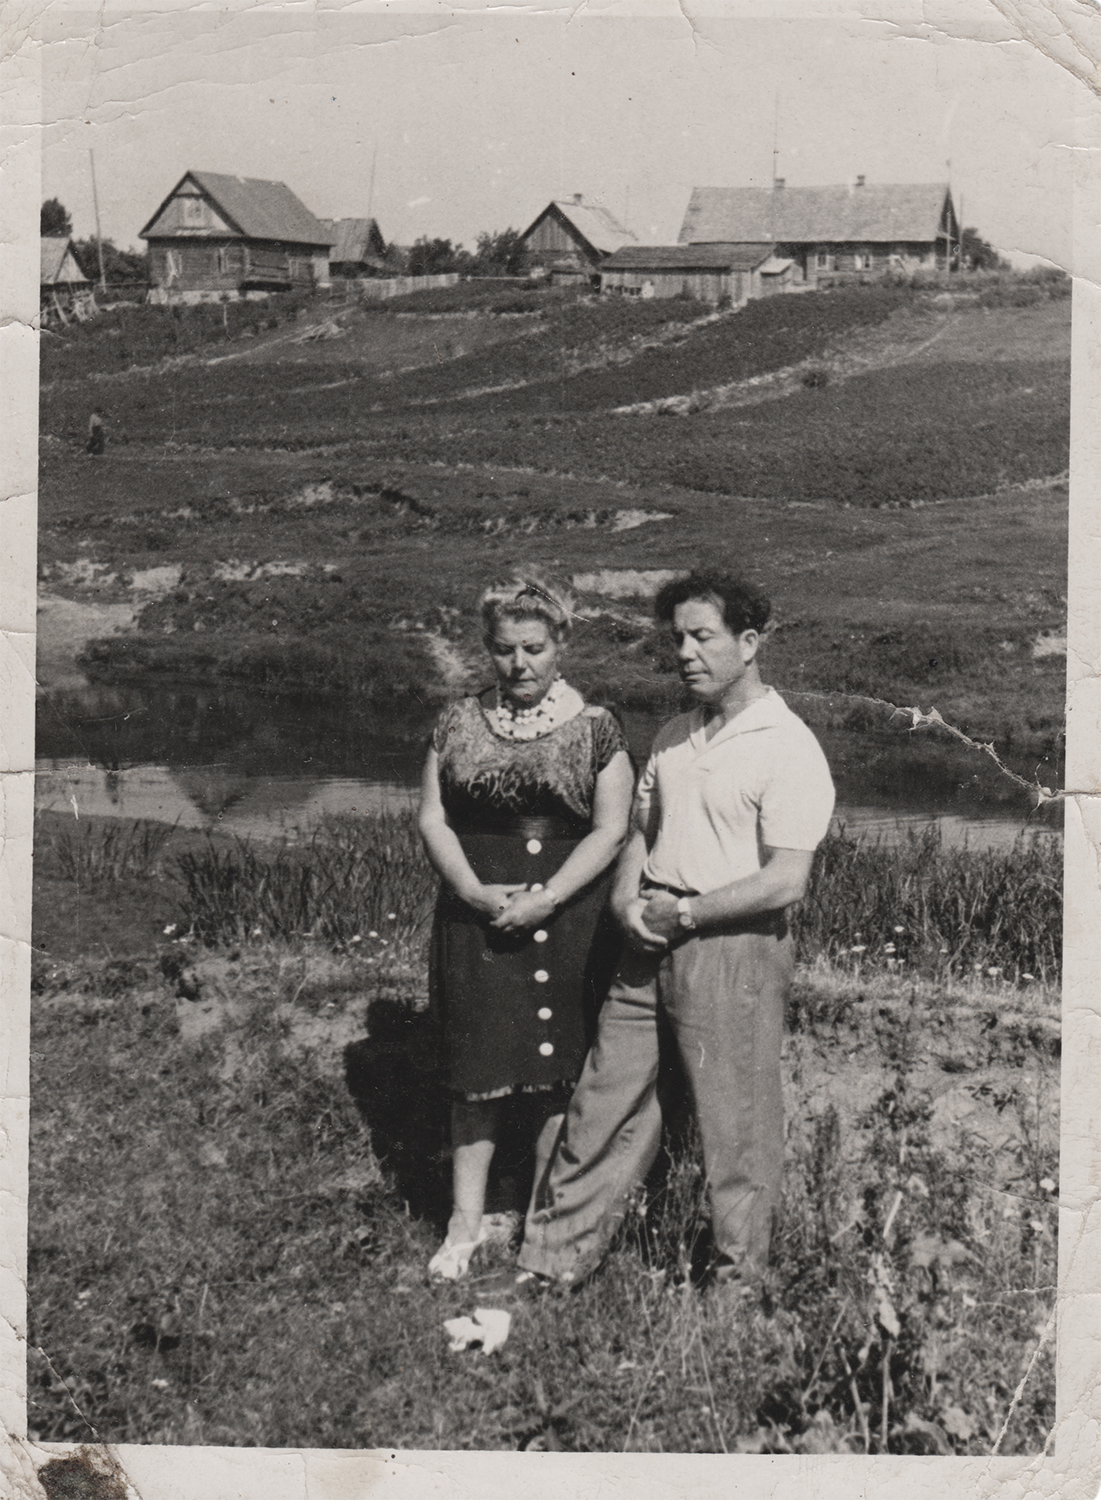 Sverdlov with his sister, standing in front of the site where the Jews of Sharkovchina were murdered.